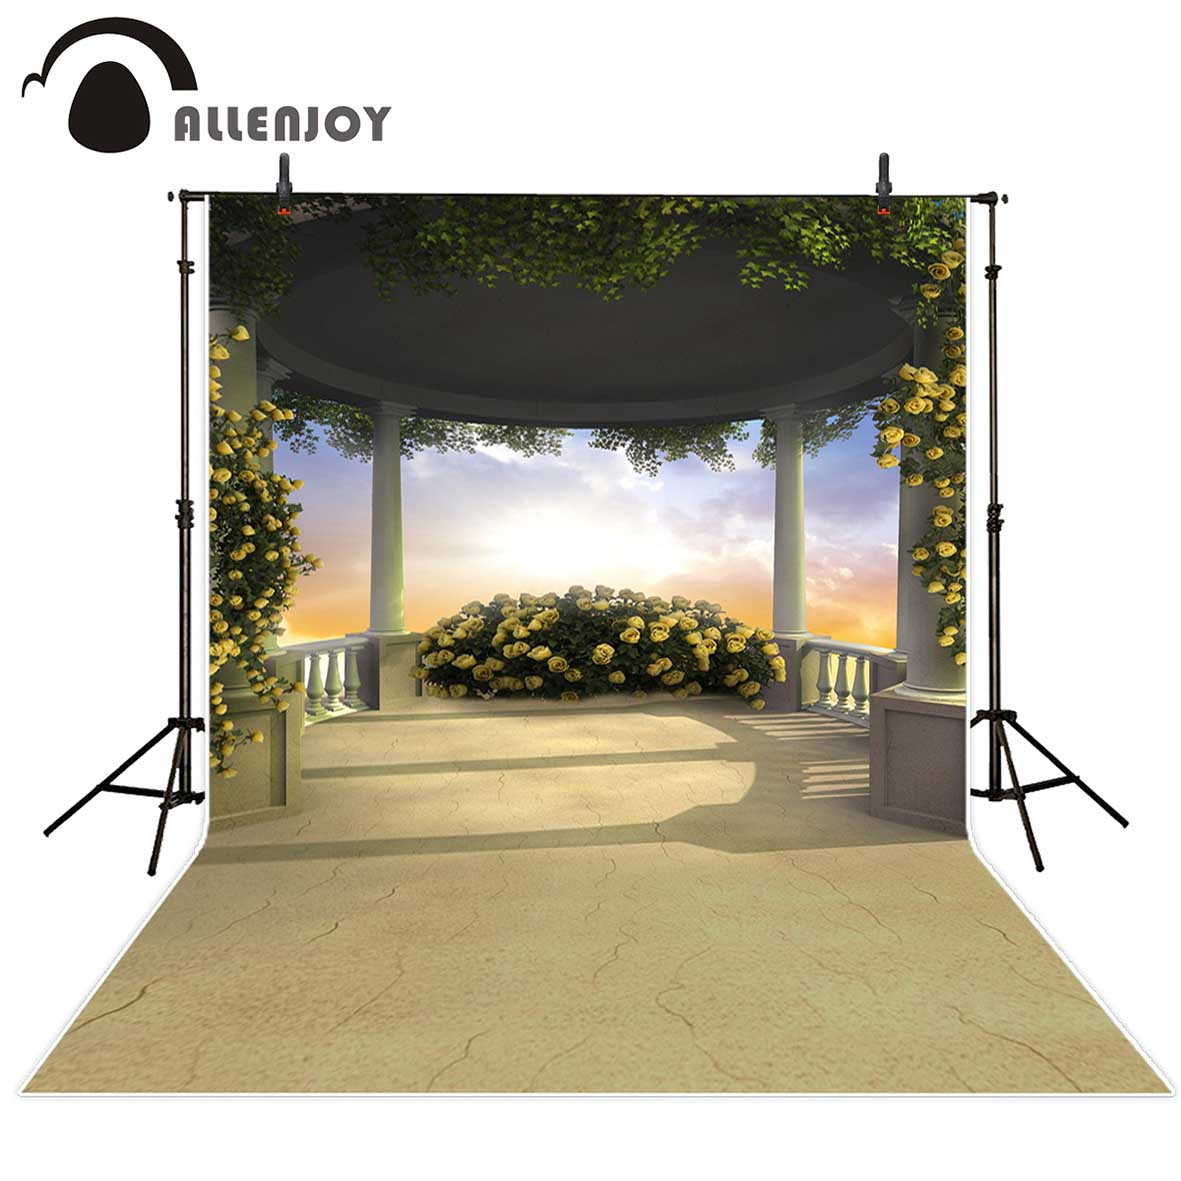 Allenjoy photography backdrops Garden wedding background beautiful sky flowers Background for a photo photo backdrop vinyl allenjoy photography backdrops valentine s day love colourful heart wedding background for studio photo backdrop vinyl